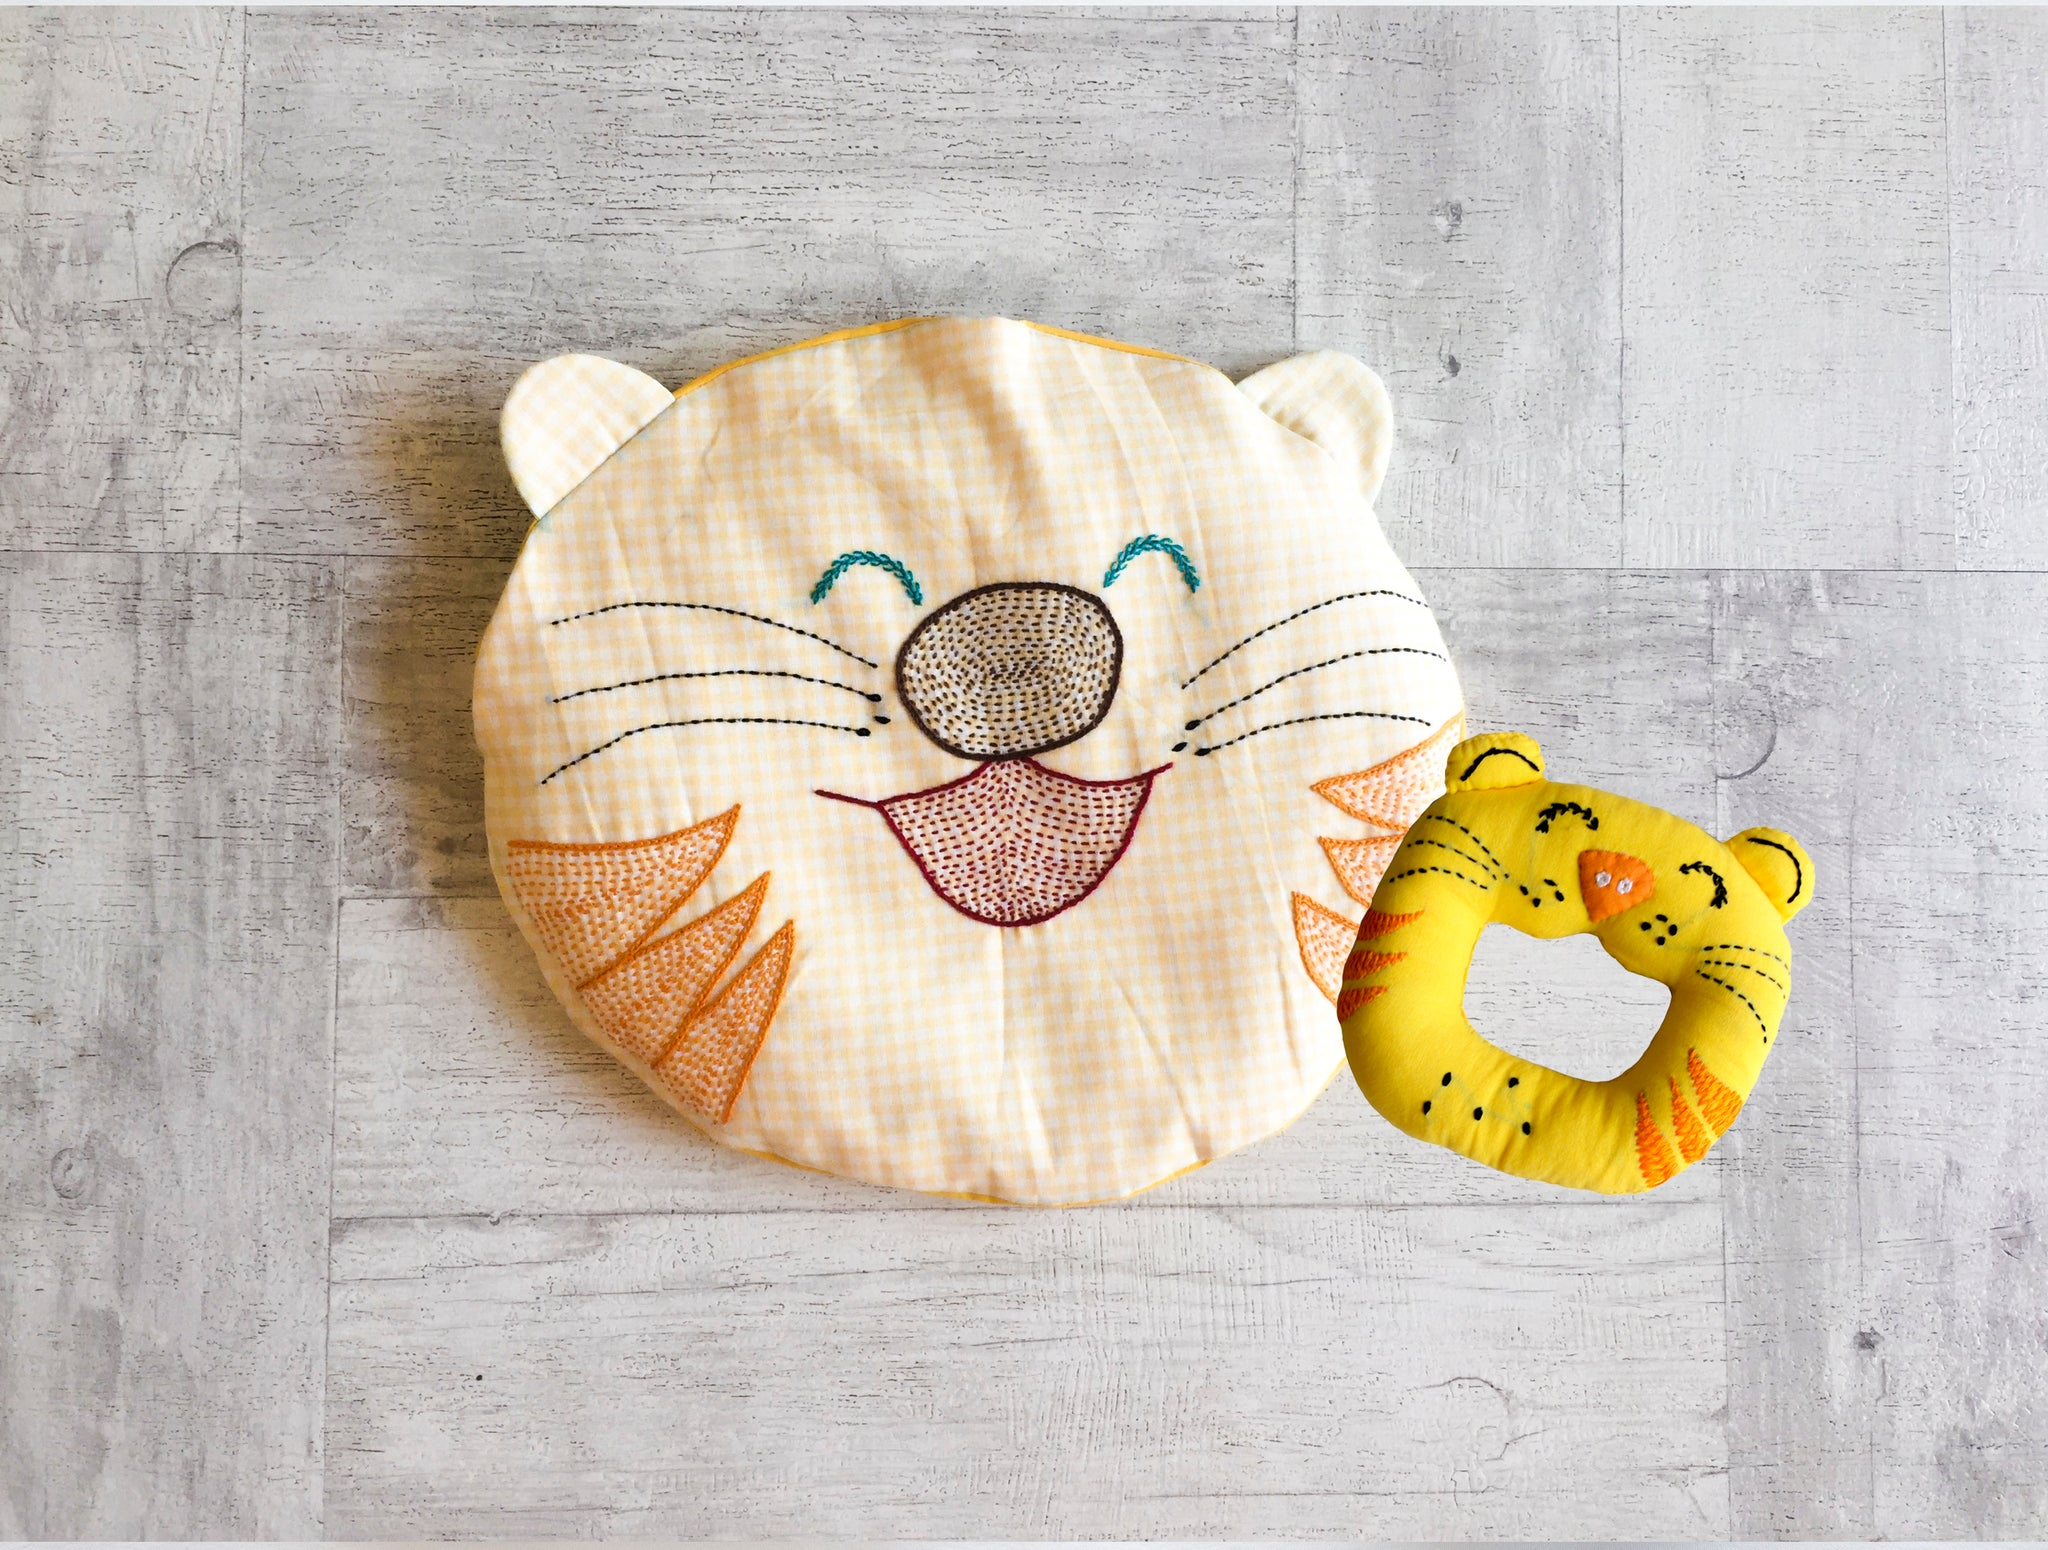 Zoo Bag - Tiger pillow & Teether - Whitewater